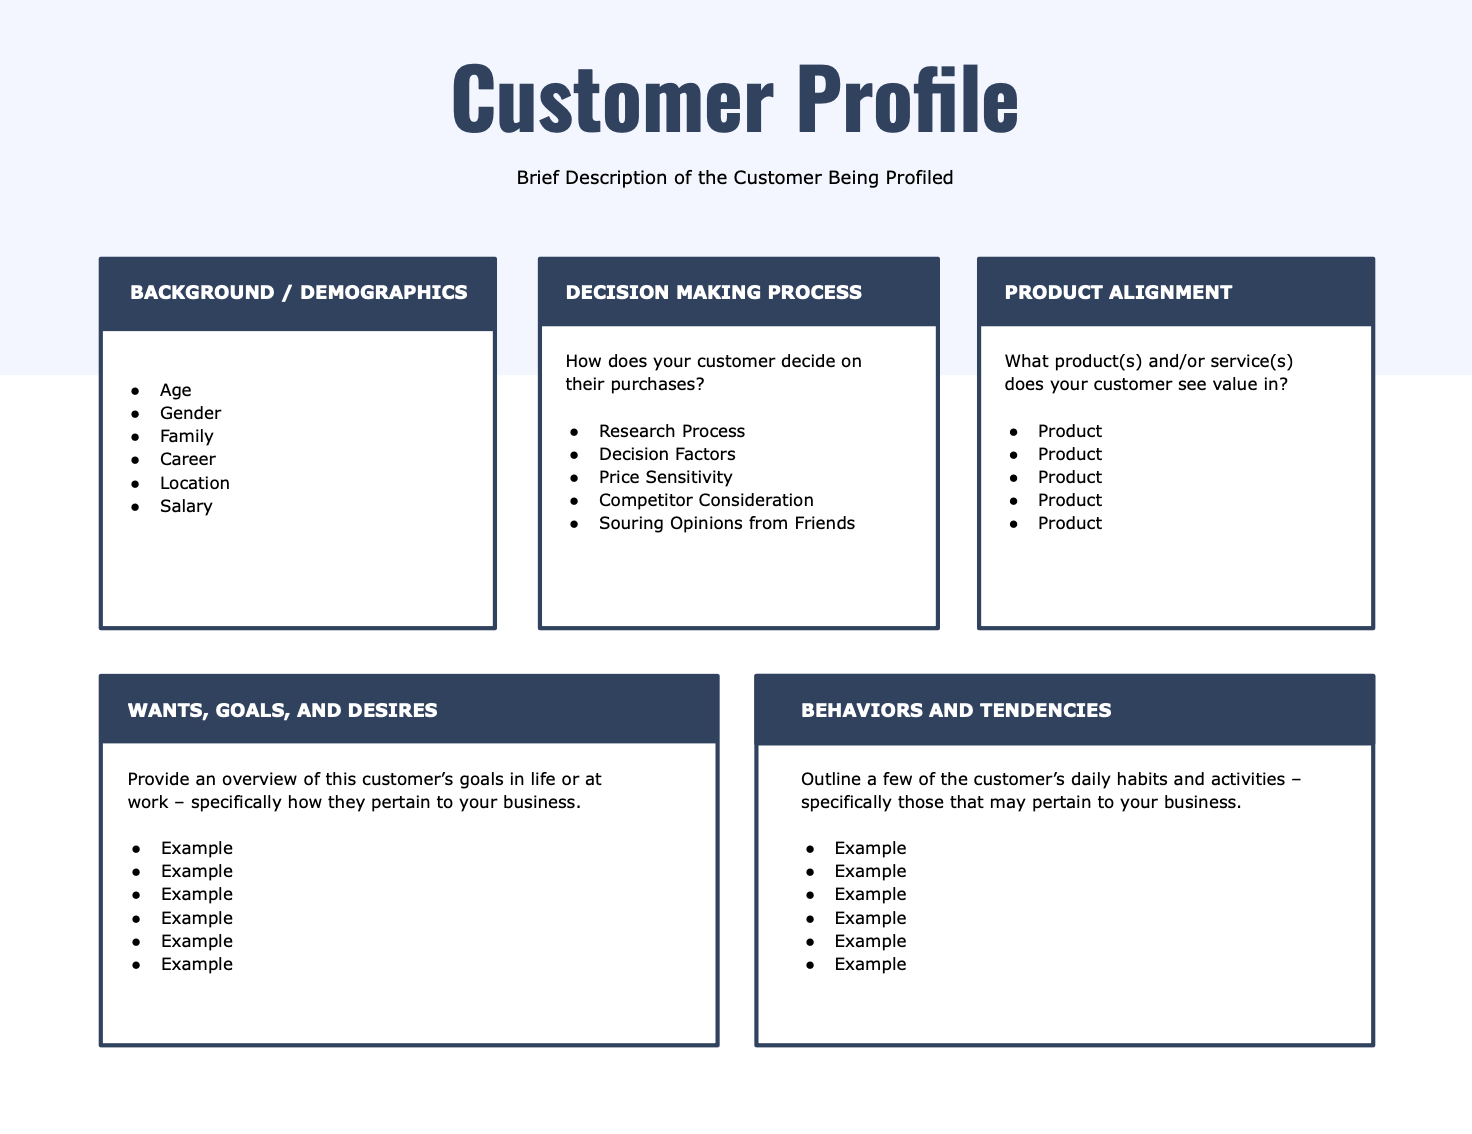 02/05/2019· focus on the rationale behind behaviours: 8 Free Customer Profile Templates Download Your Copy